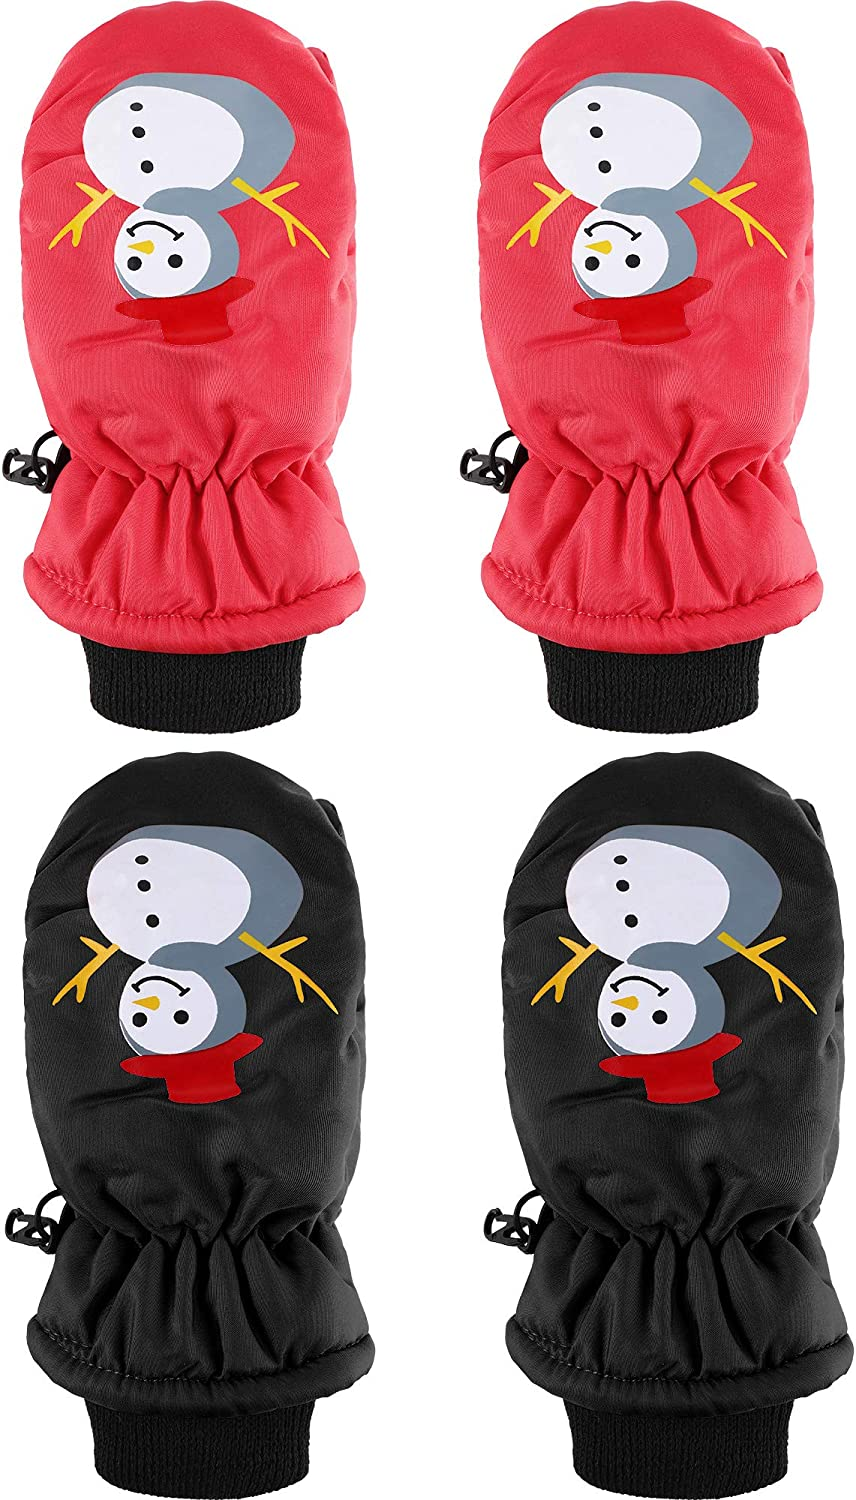 SATINIOR 2 Pairs Child Ski Gloves Toddlers Windproof Snow Mittens for Boys Girls Aged 3-5 Years (Red, Black)